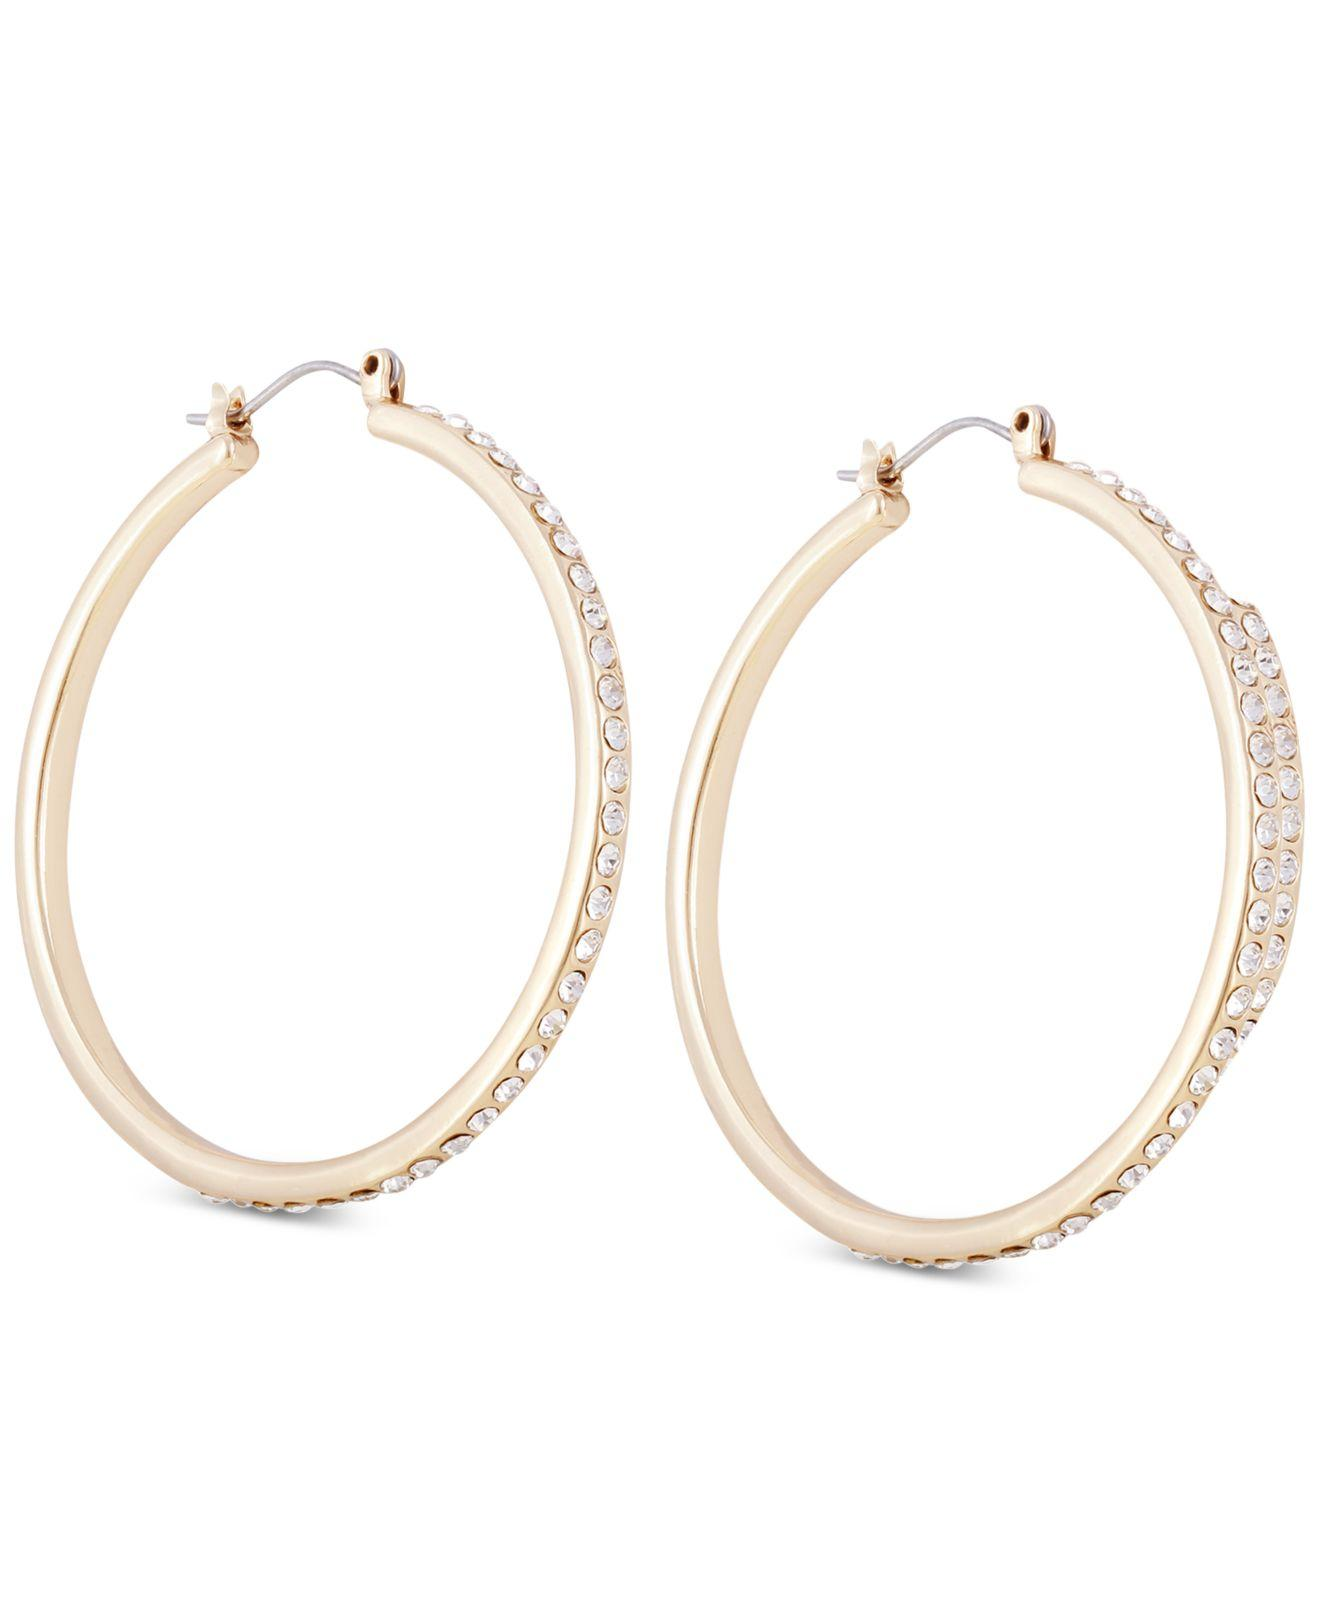 3c99275b9 Lyst - Guess Gold-tone Crystal Large Hoop Earrings in Metallic